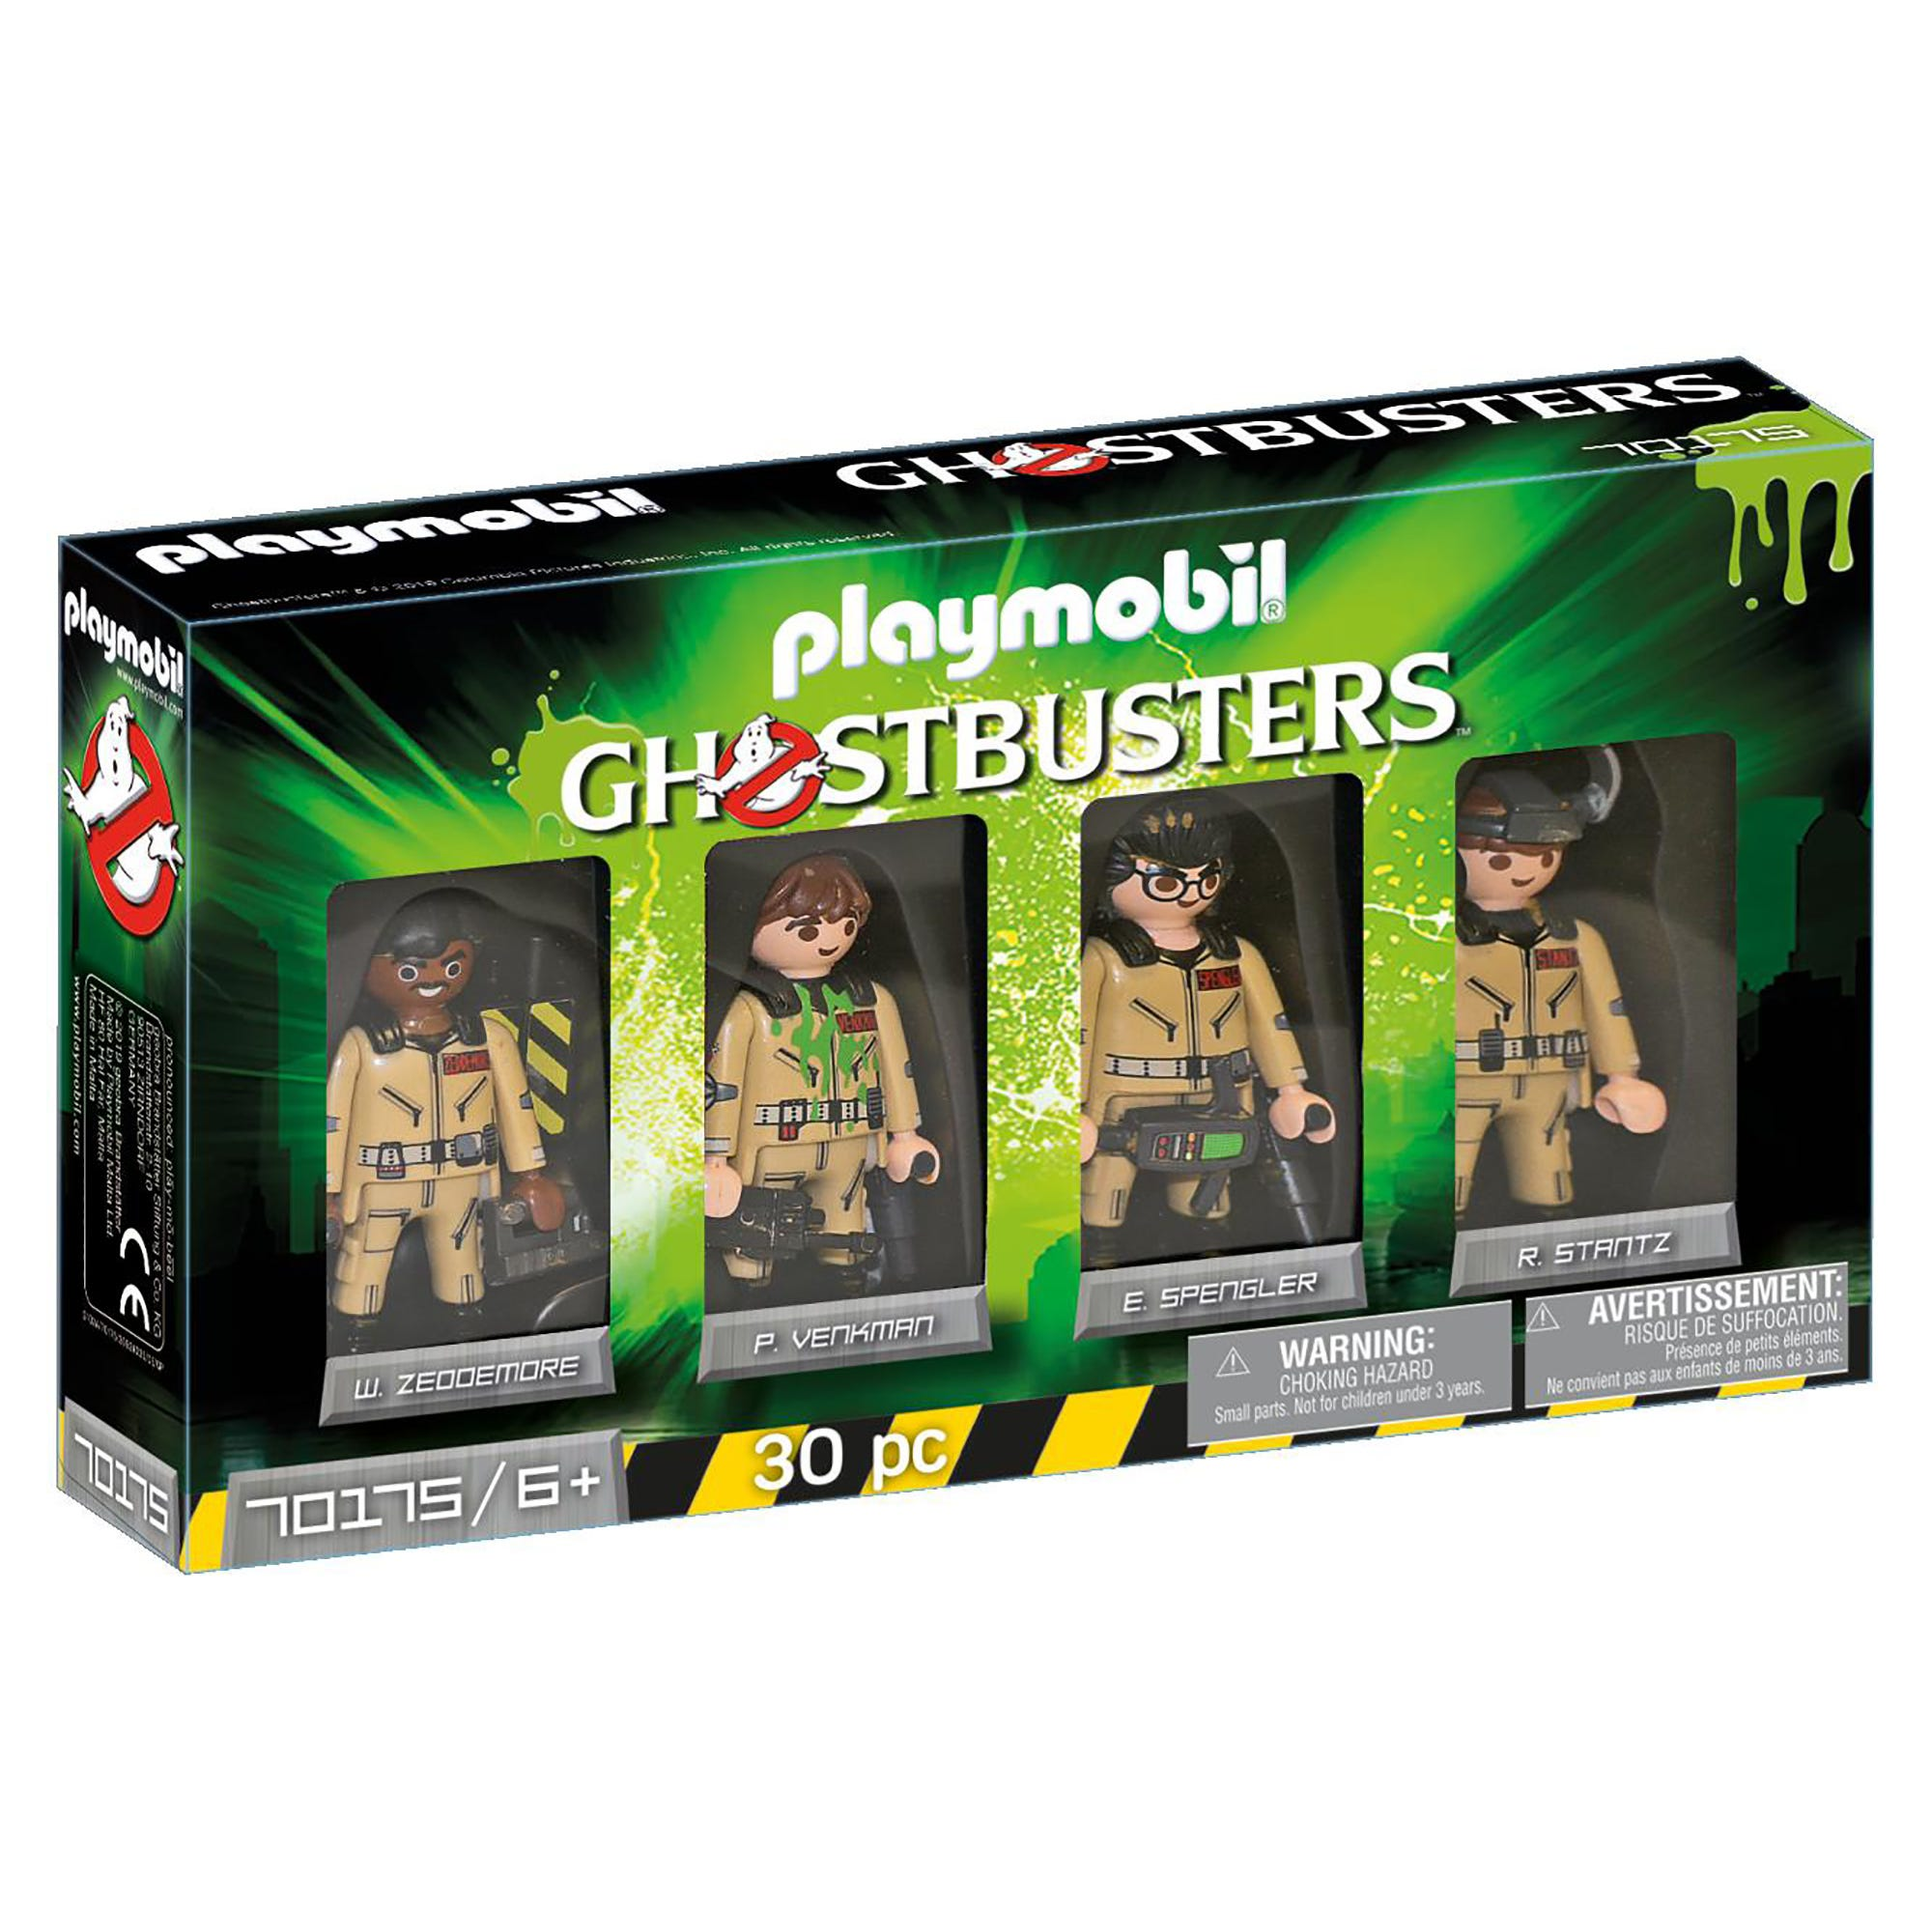 Playmobil 70175 Ghostbusters Collectors Set Ghostbusters